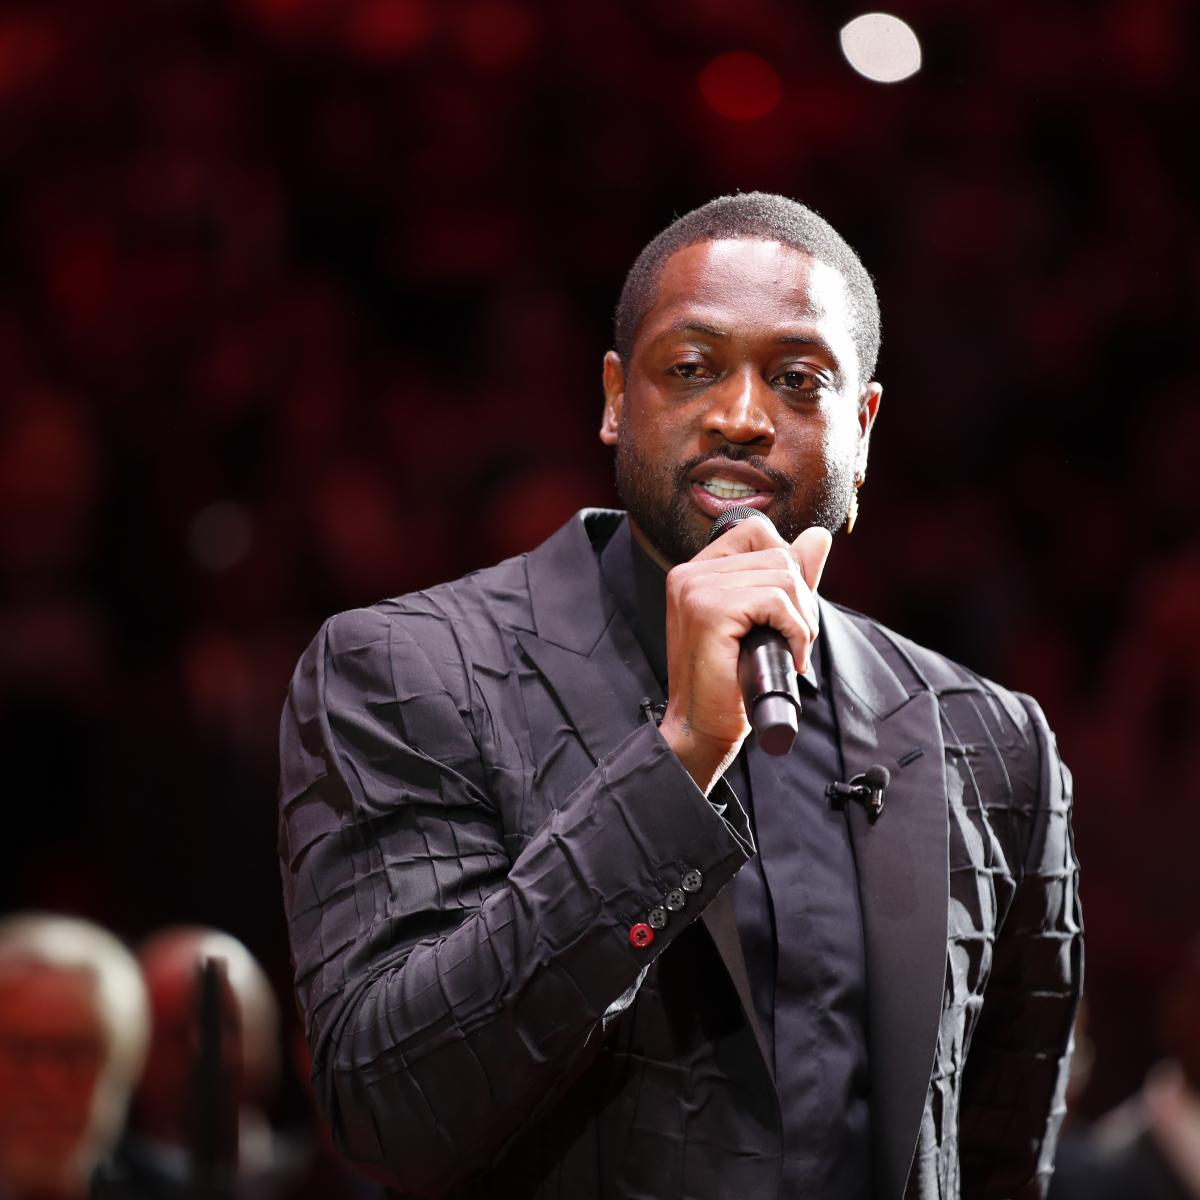 Dwyane Wade Quotes Kobe Bryant During Heat Jersey Retirement Ceremony